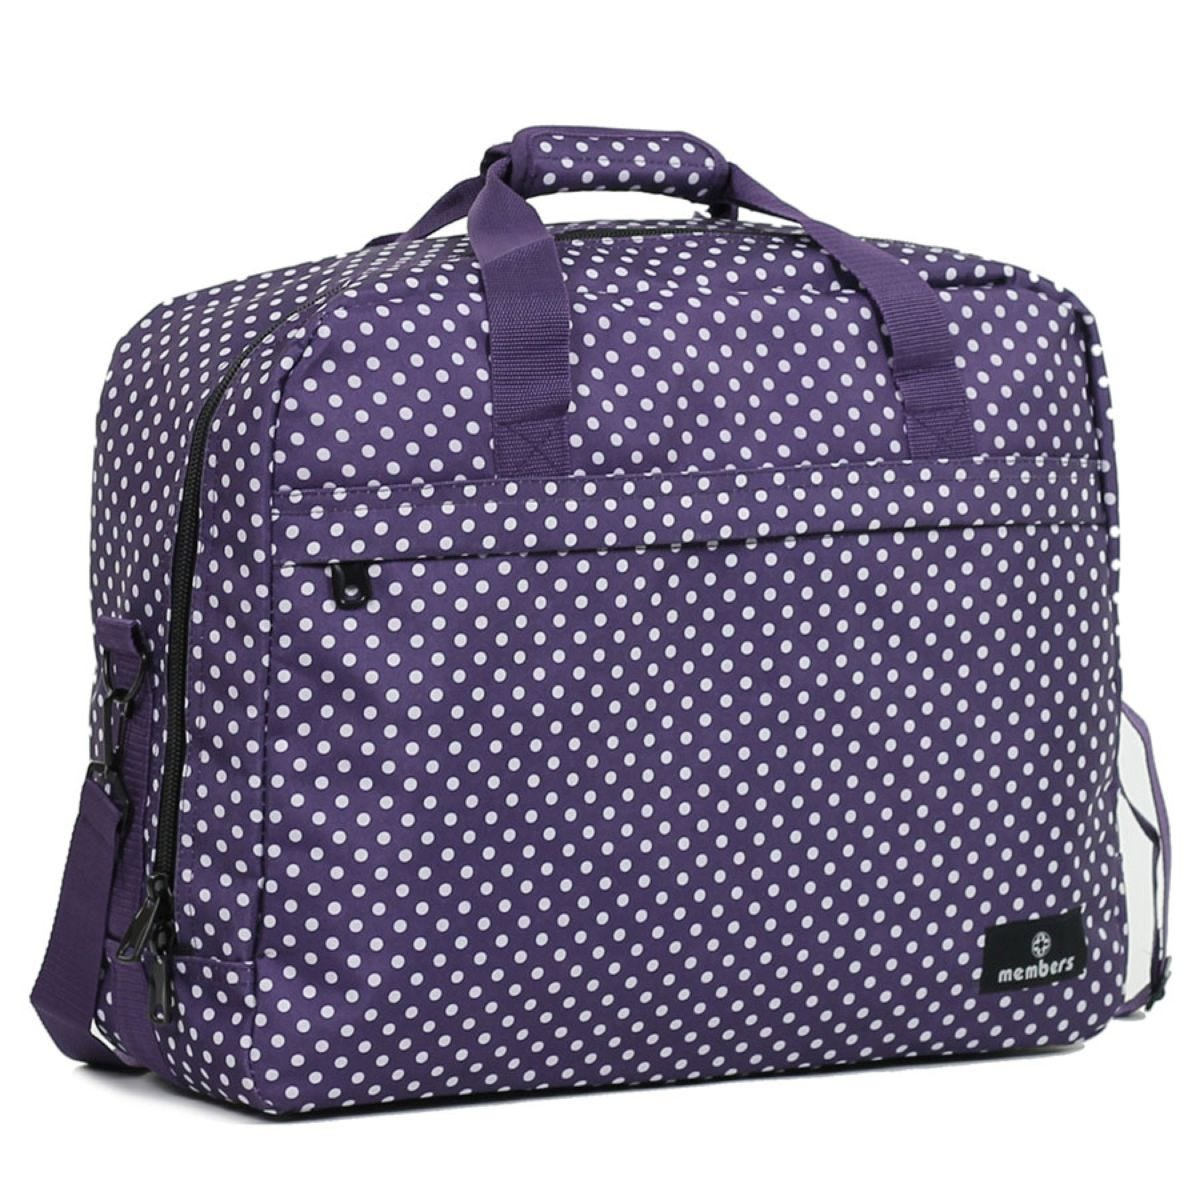 Members by Rock Luggage Essential Carry-On Travel Bag - Purple Polka Dots